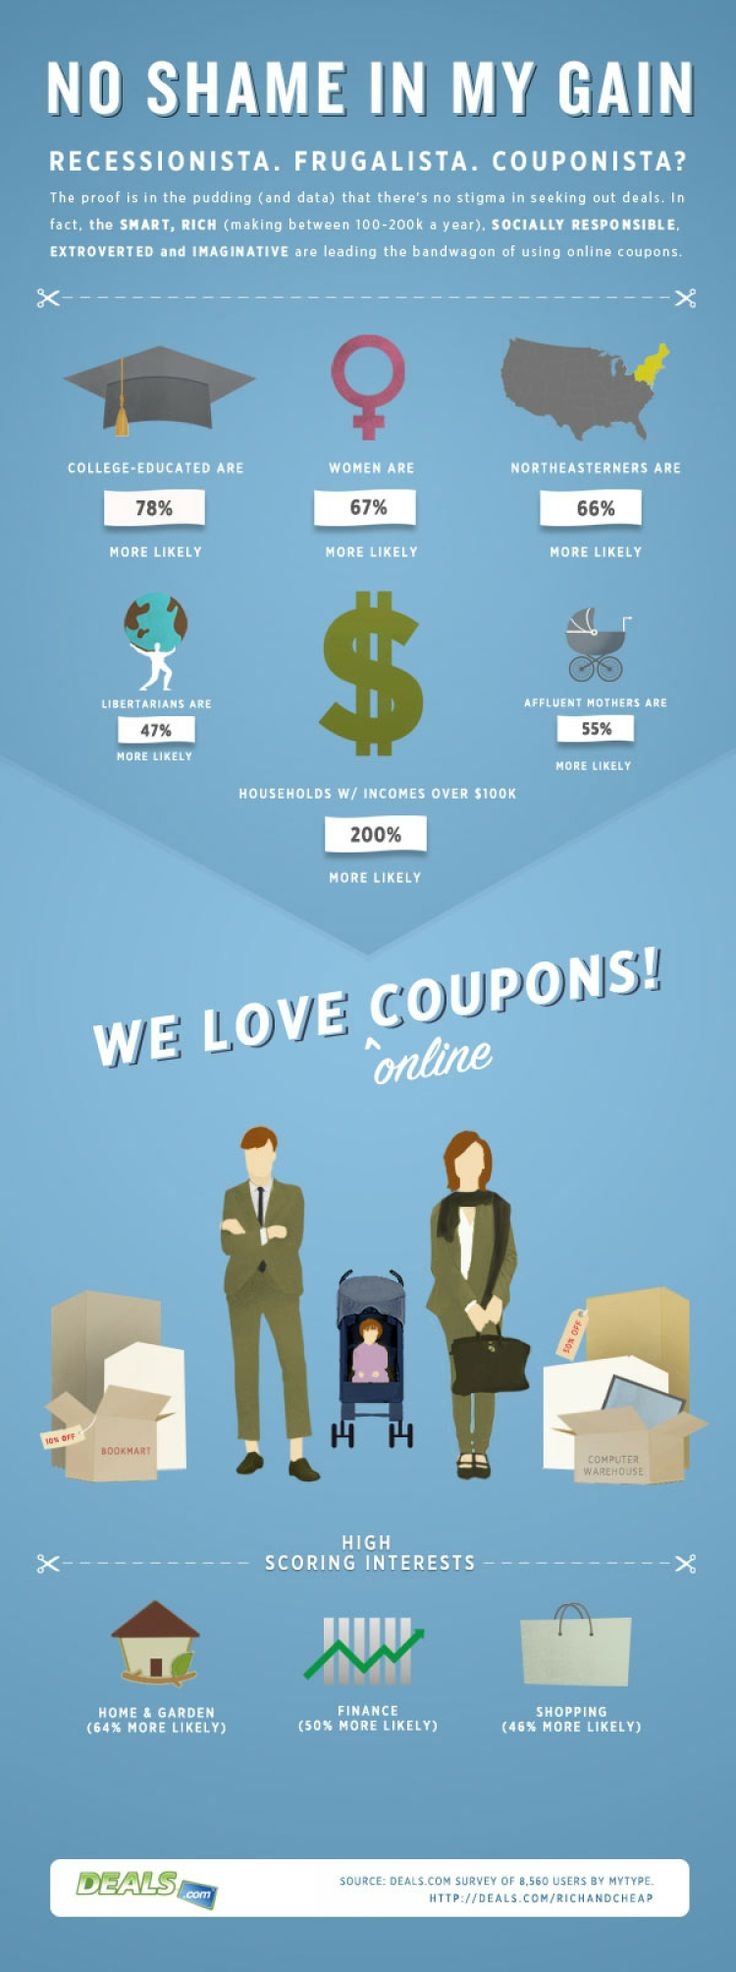 14 best coupon cartoons images on pinterest coupon coupon codes in this recession coupons are making a fashionable comeback from clipping them out of the newspaper to finding deals online saving is chic this inf fandeluxe Choice Image